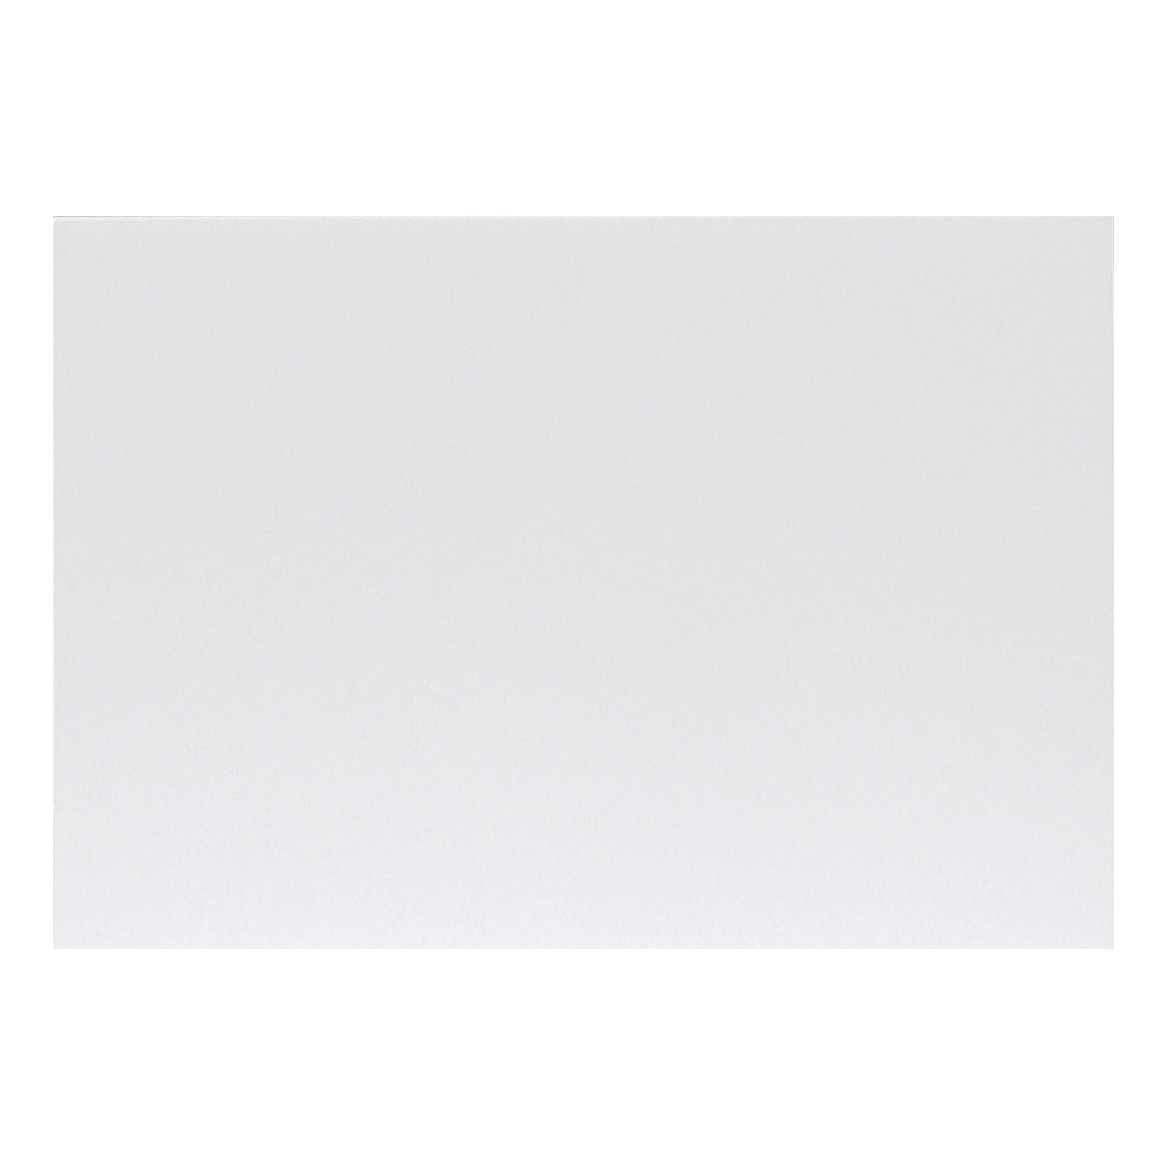 Display Board Lightweight Durable CFC Free W762xD5xH1016mm White [Pack 25] Ref WF5040